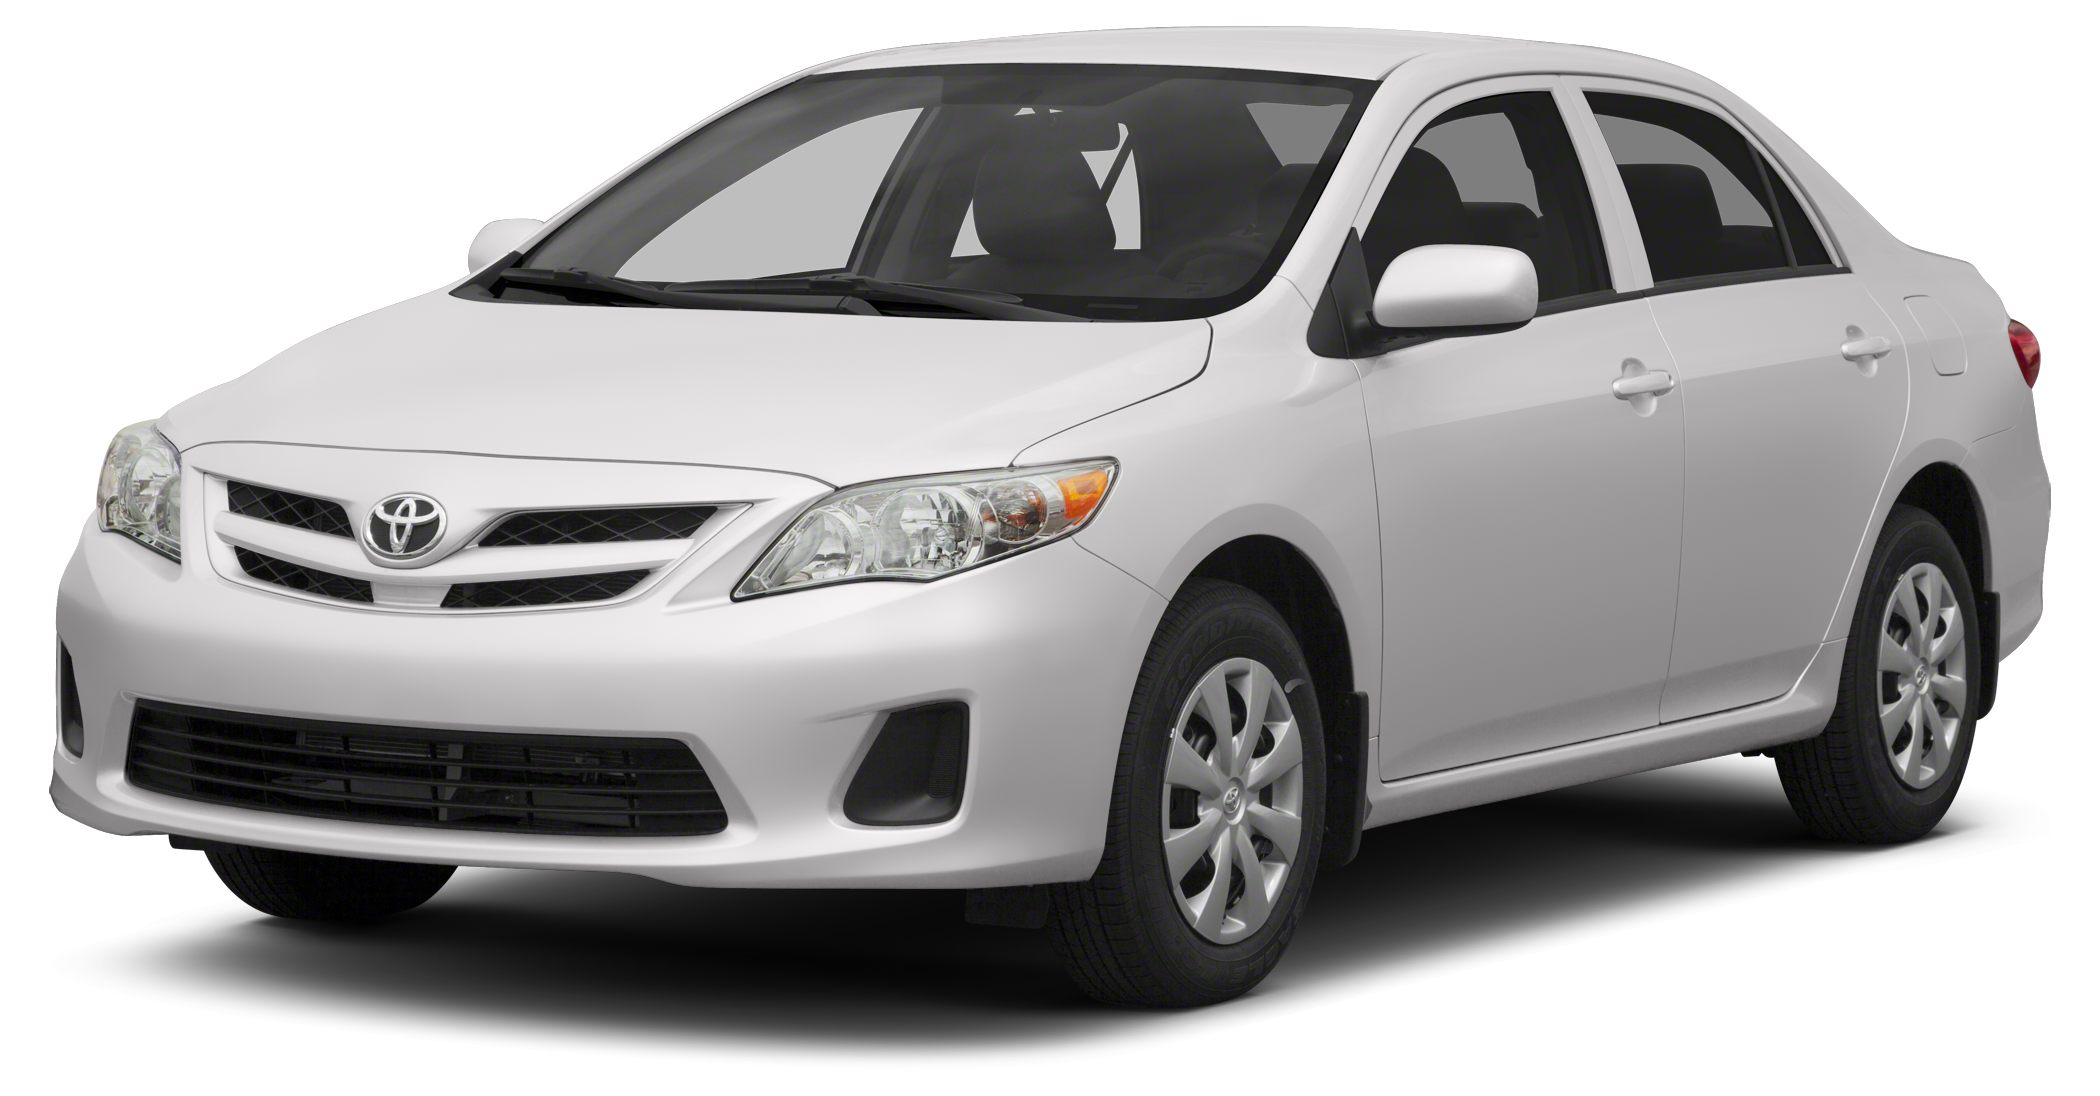 2013 Toyota Corolla LE LOW MILES - 24130 EPA 34 MPG Hwy26 MPG City LE trim SUPER WHITE exteri